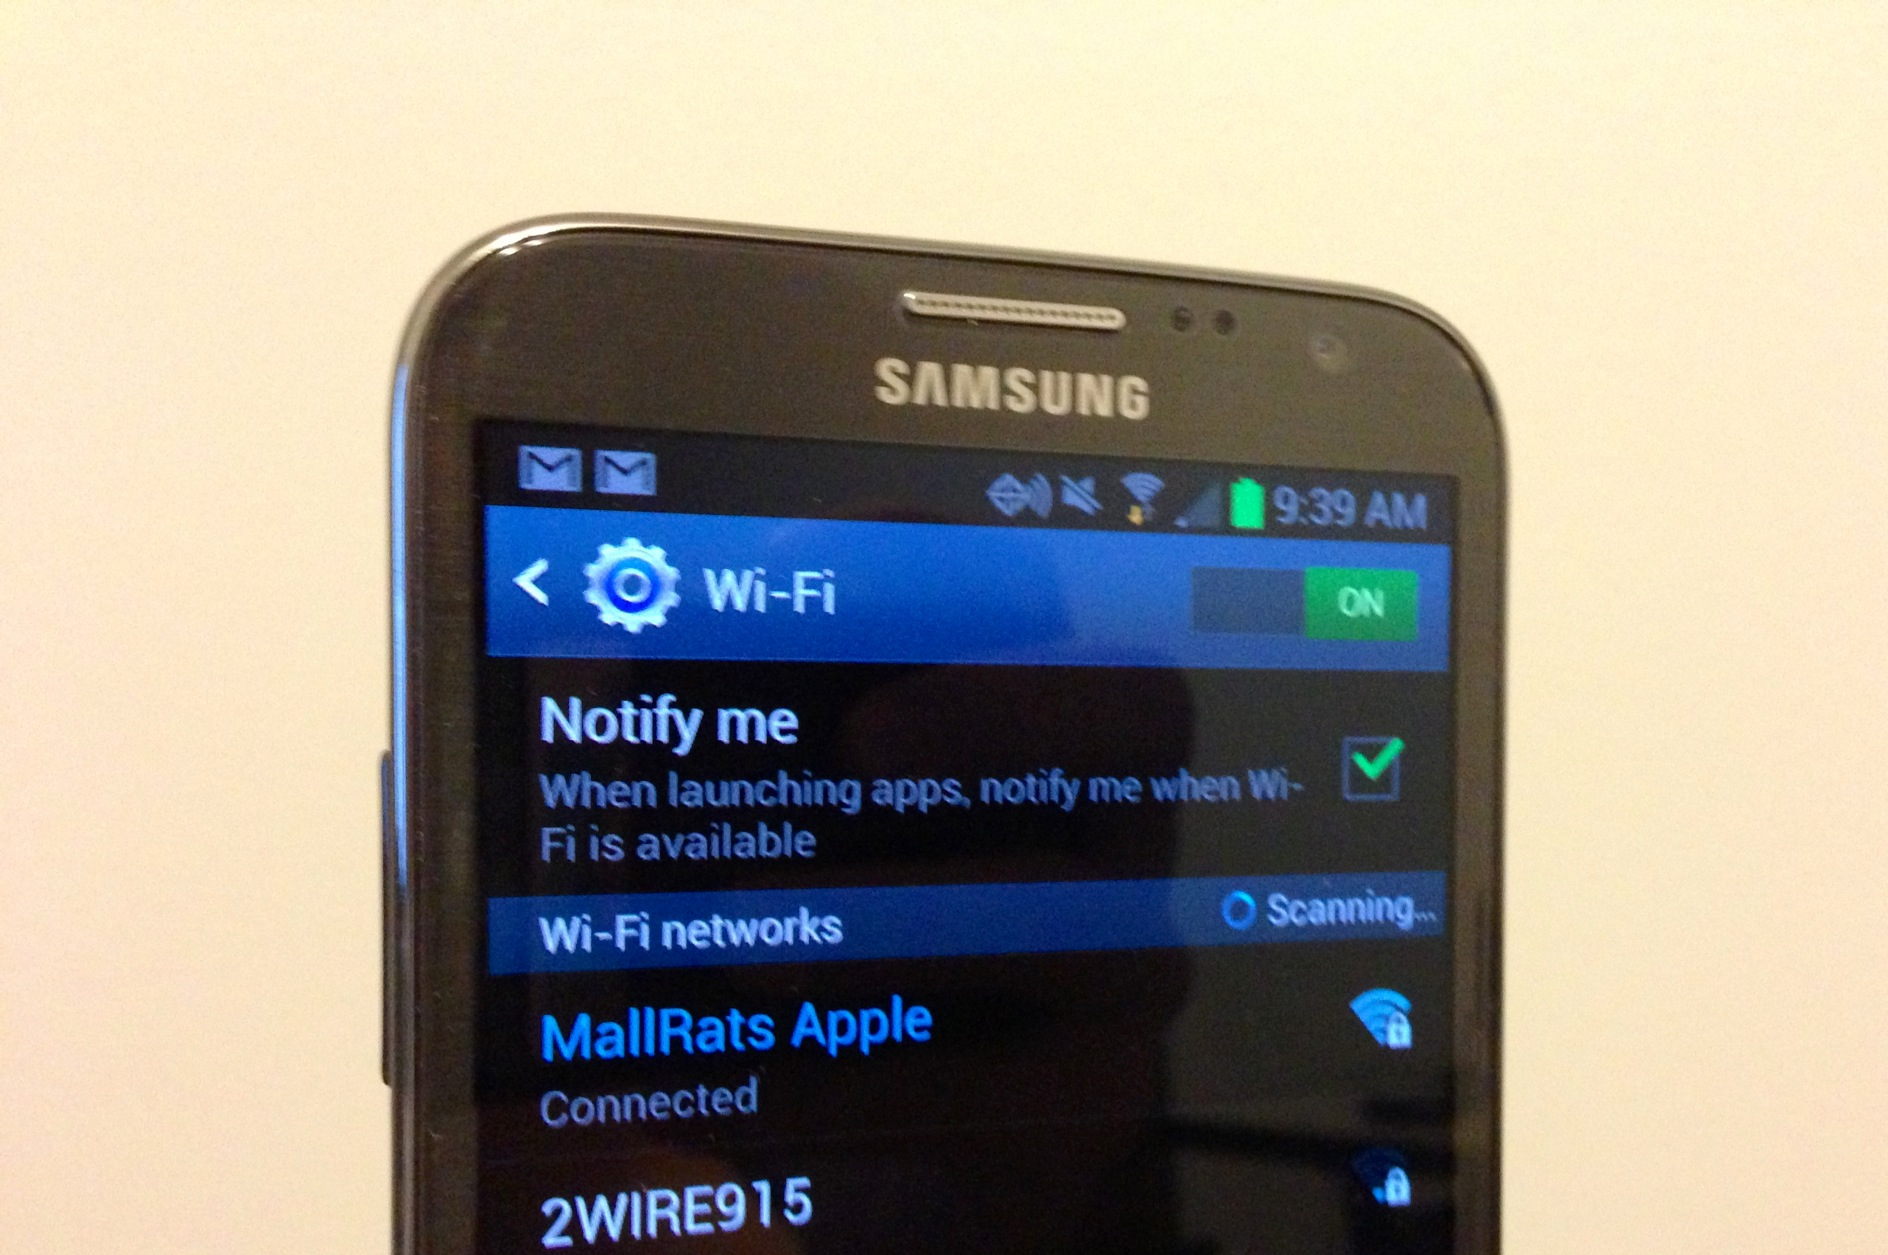 How To Fix Galaxy Note 2 Wifi Problems In 5 Seconds